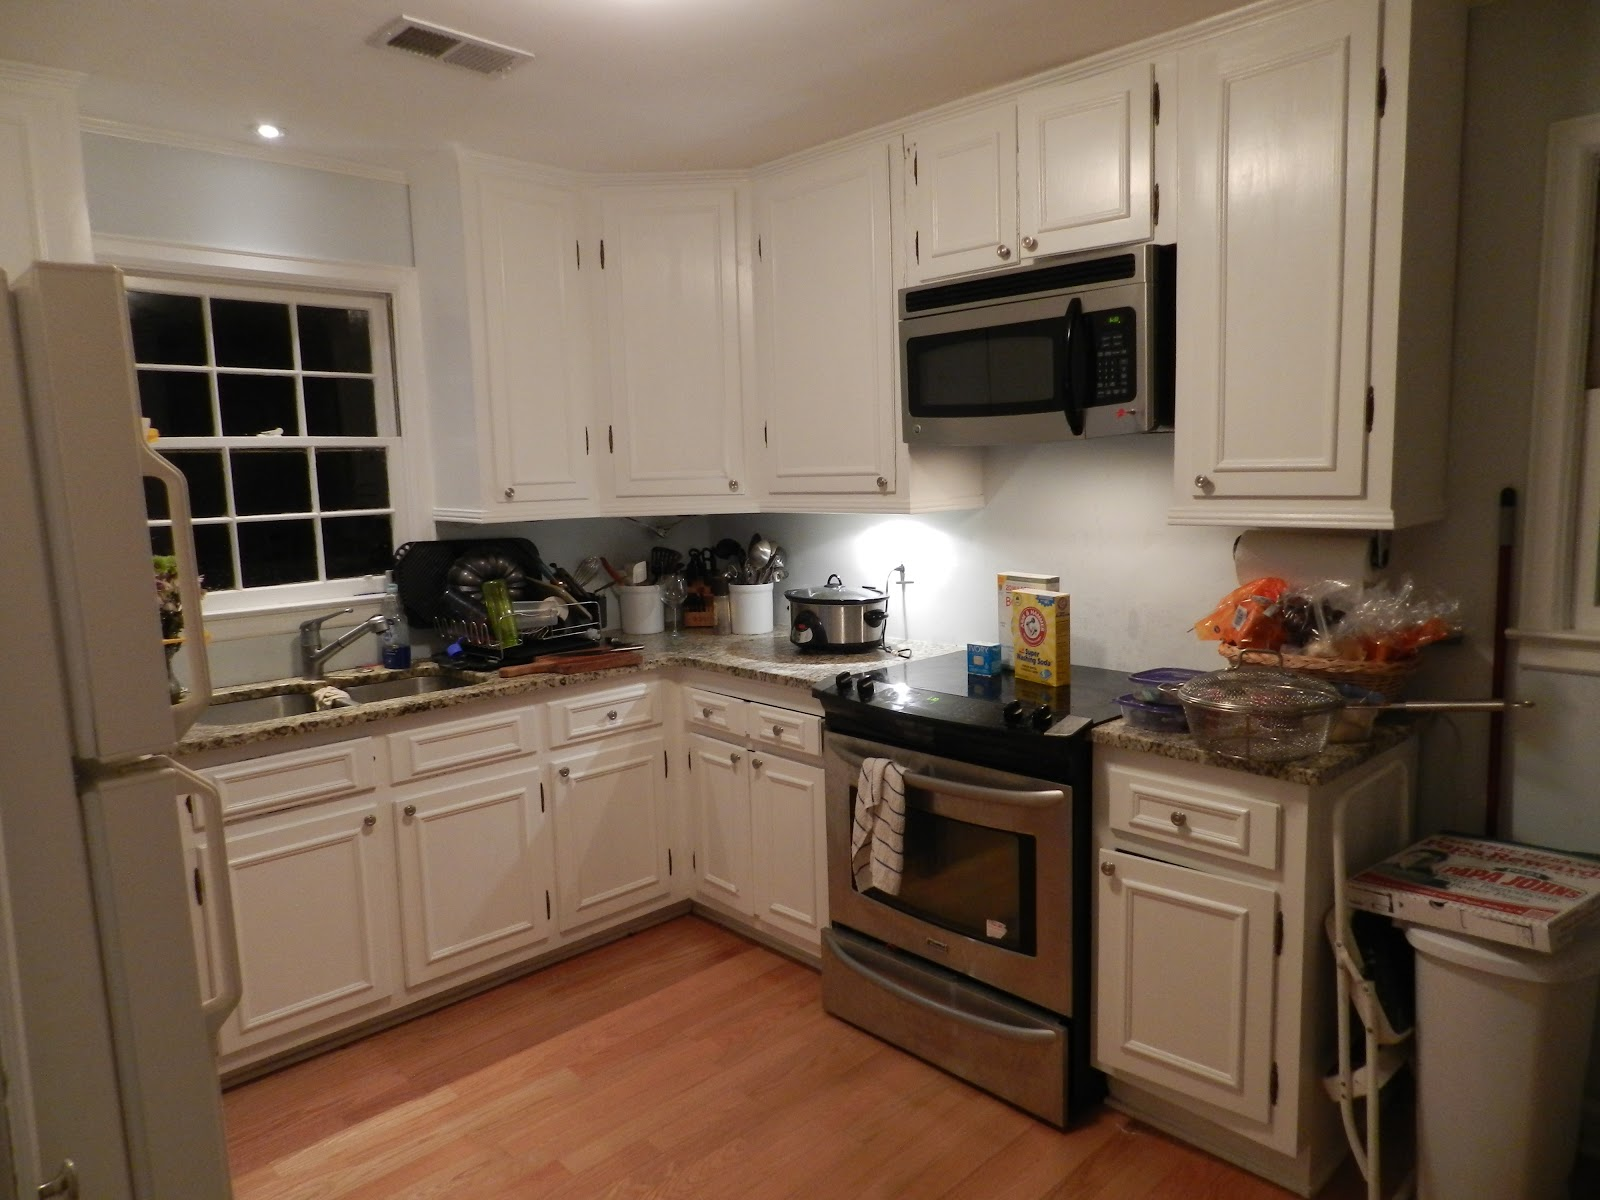 How Much Is A Normal Kitchen Remodel